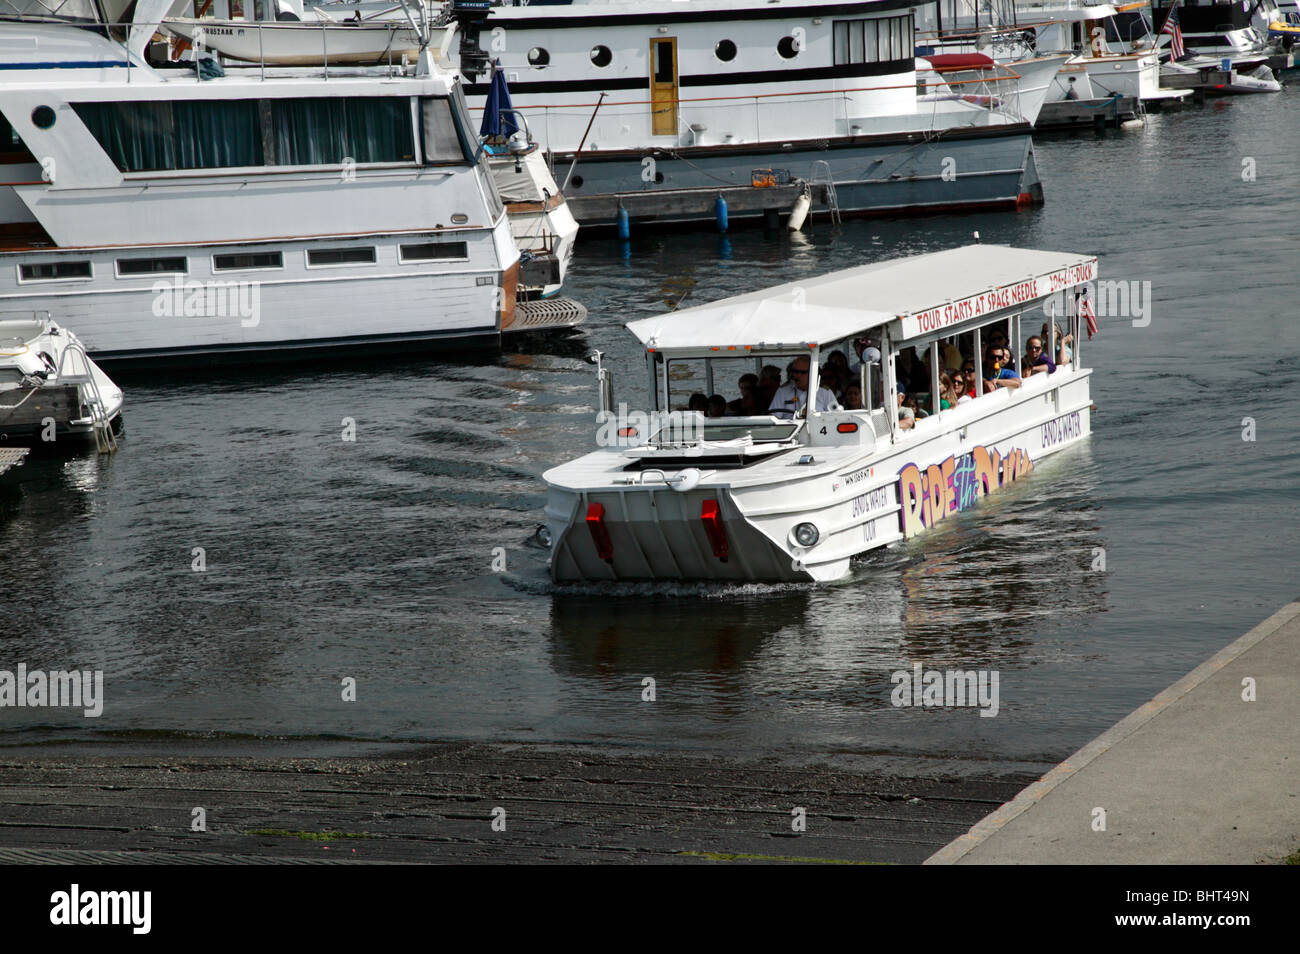 Second world War Amphibious vehicle emerges from lake Union, during a Duck tour of Seattle - Stock Image